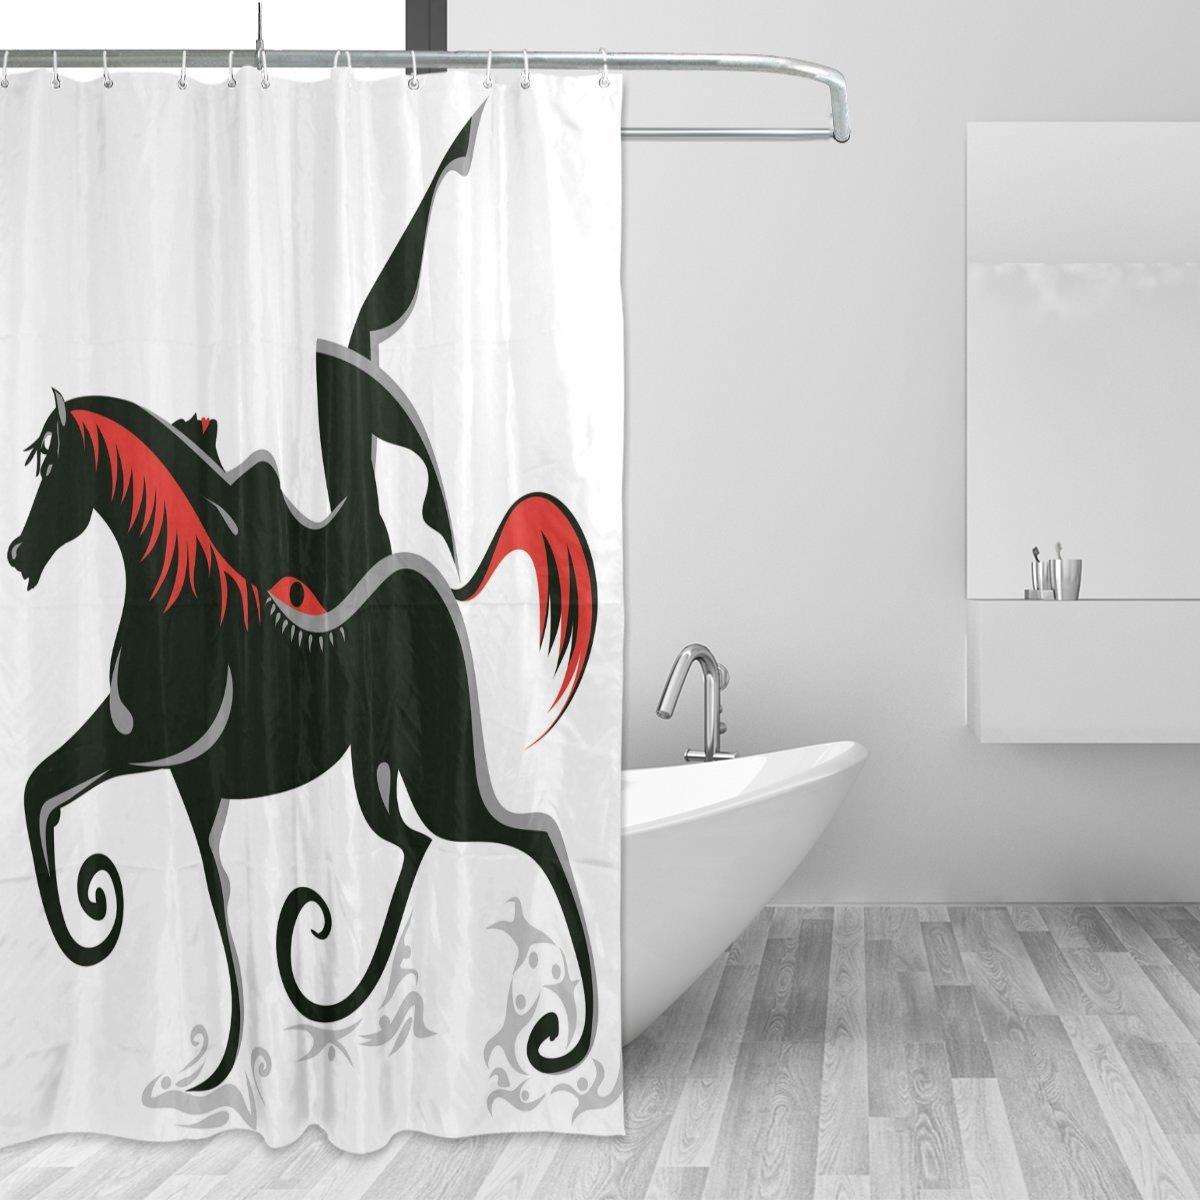 Buy African Art Home Decor Shower Curtain Set By Alaza Ancient Ethnic Egyptian Tribal Art African Horse Polyester Bathroom Shower Curtain Set With Hooks 60w X 72l Inches Red And Black In Cheap Price On Alibaba Com